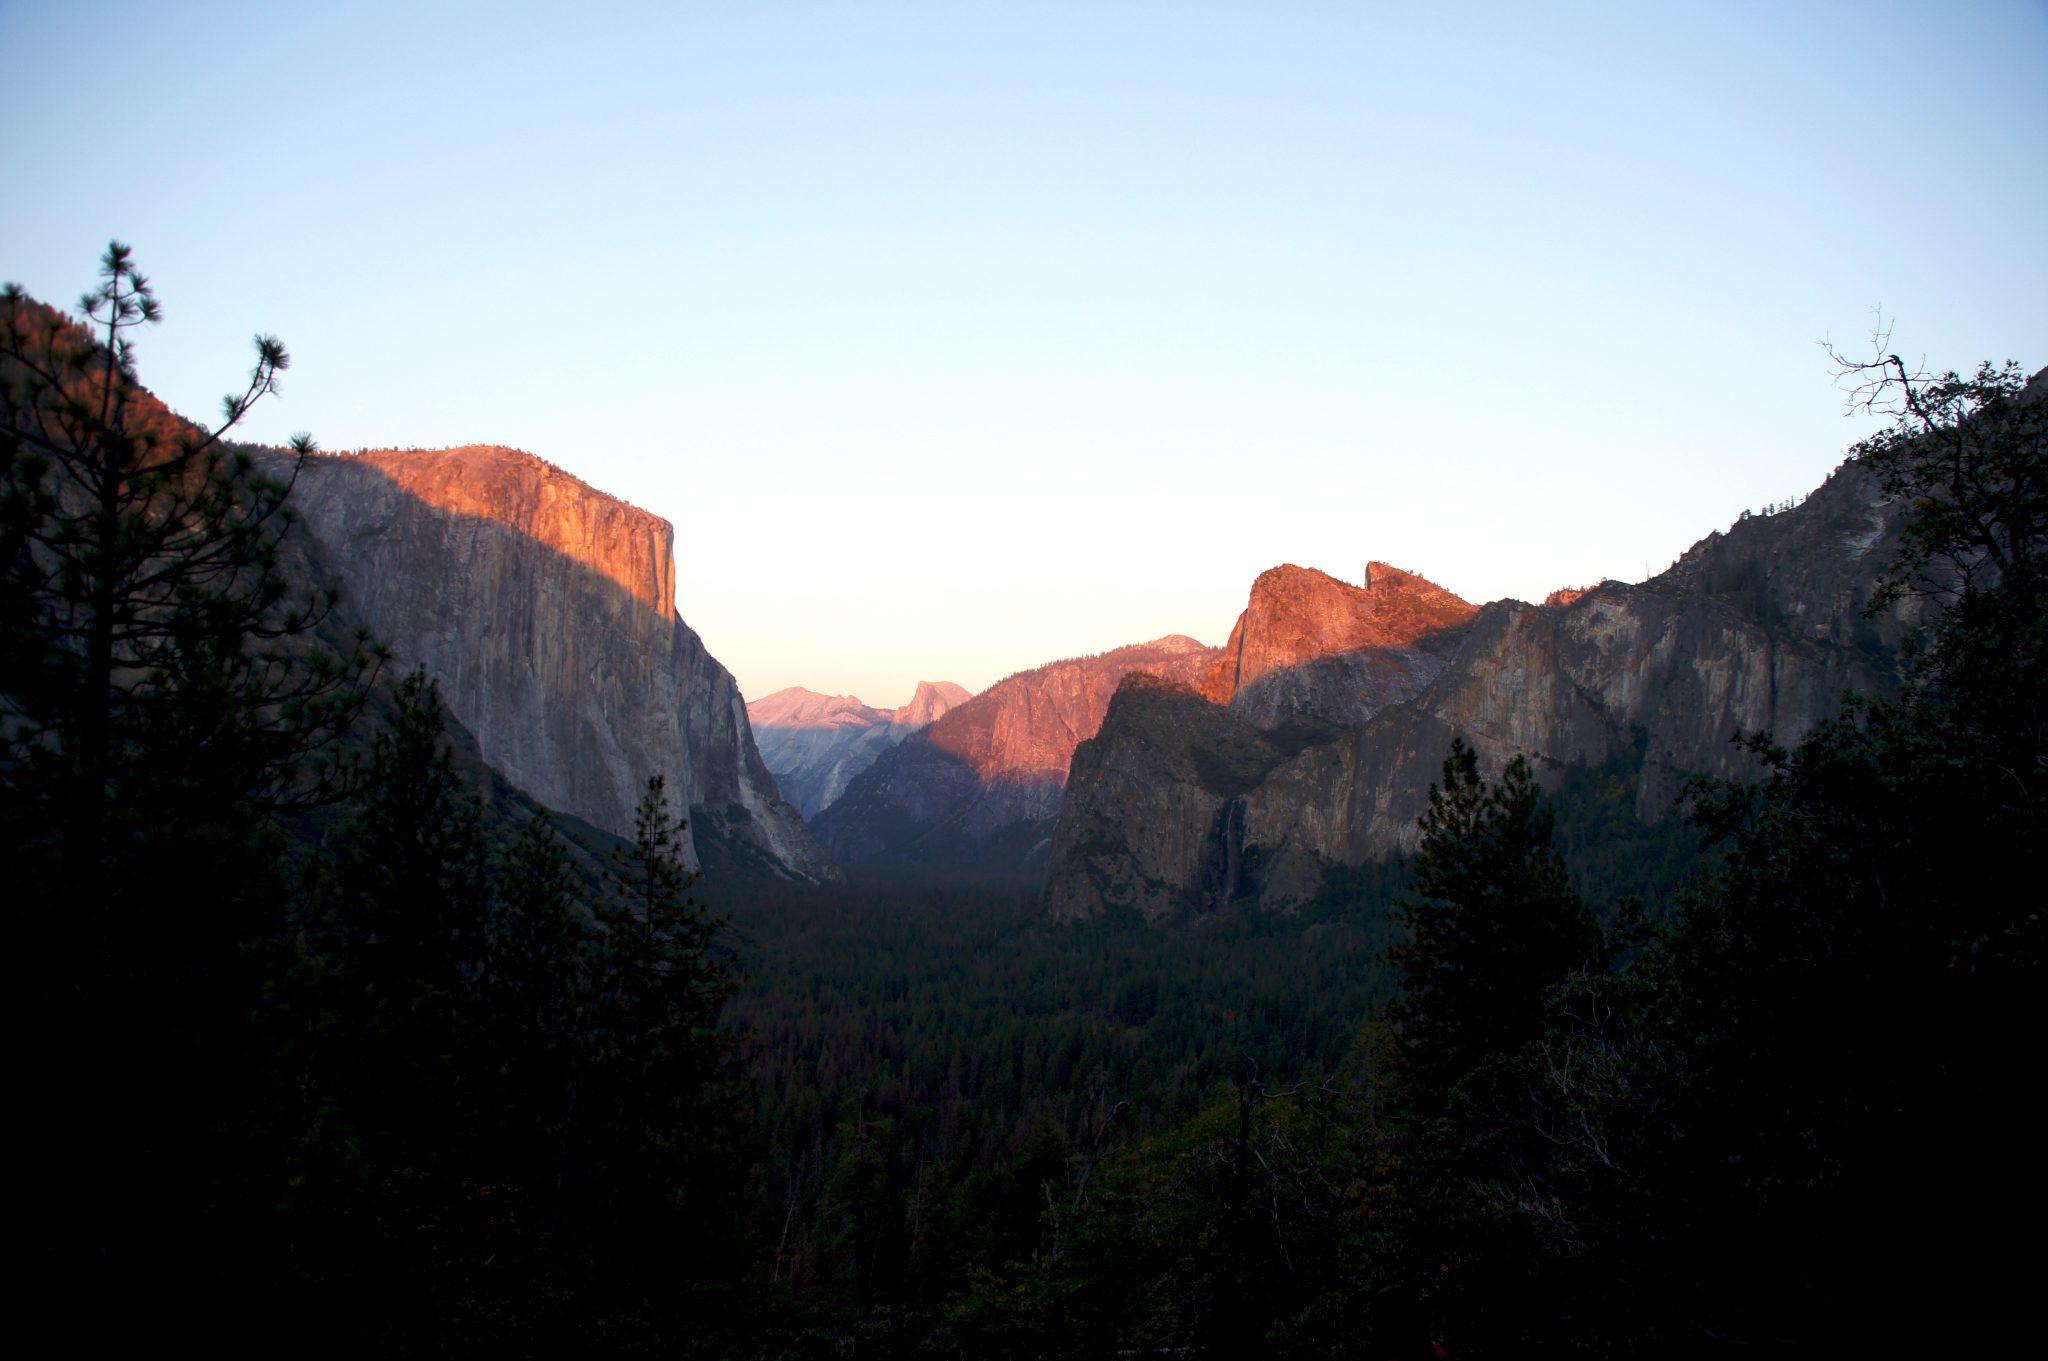 sunset in the Yosemite national park